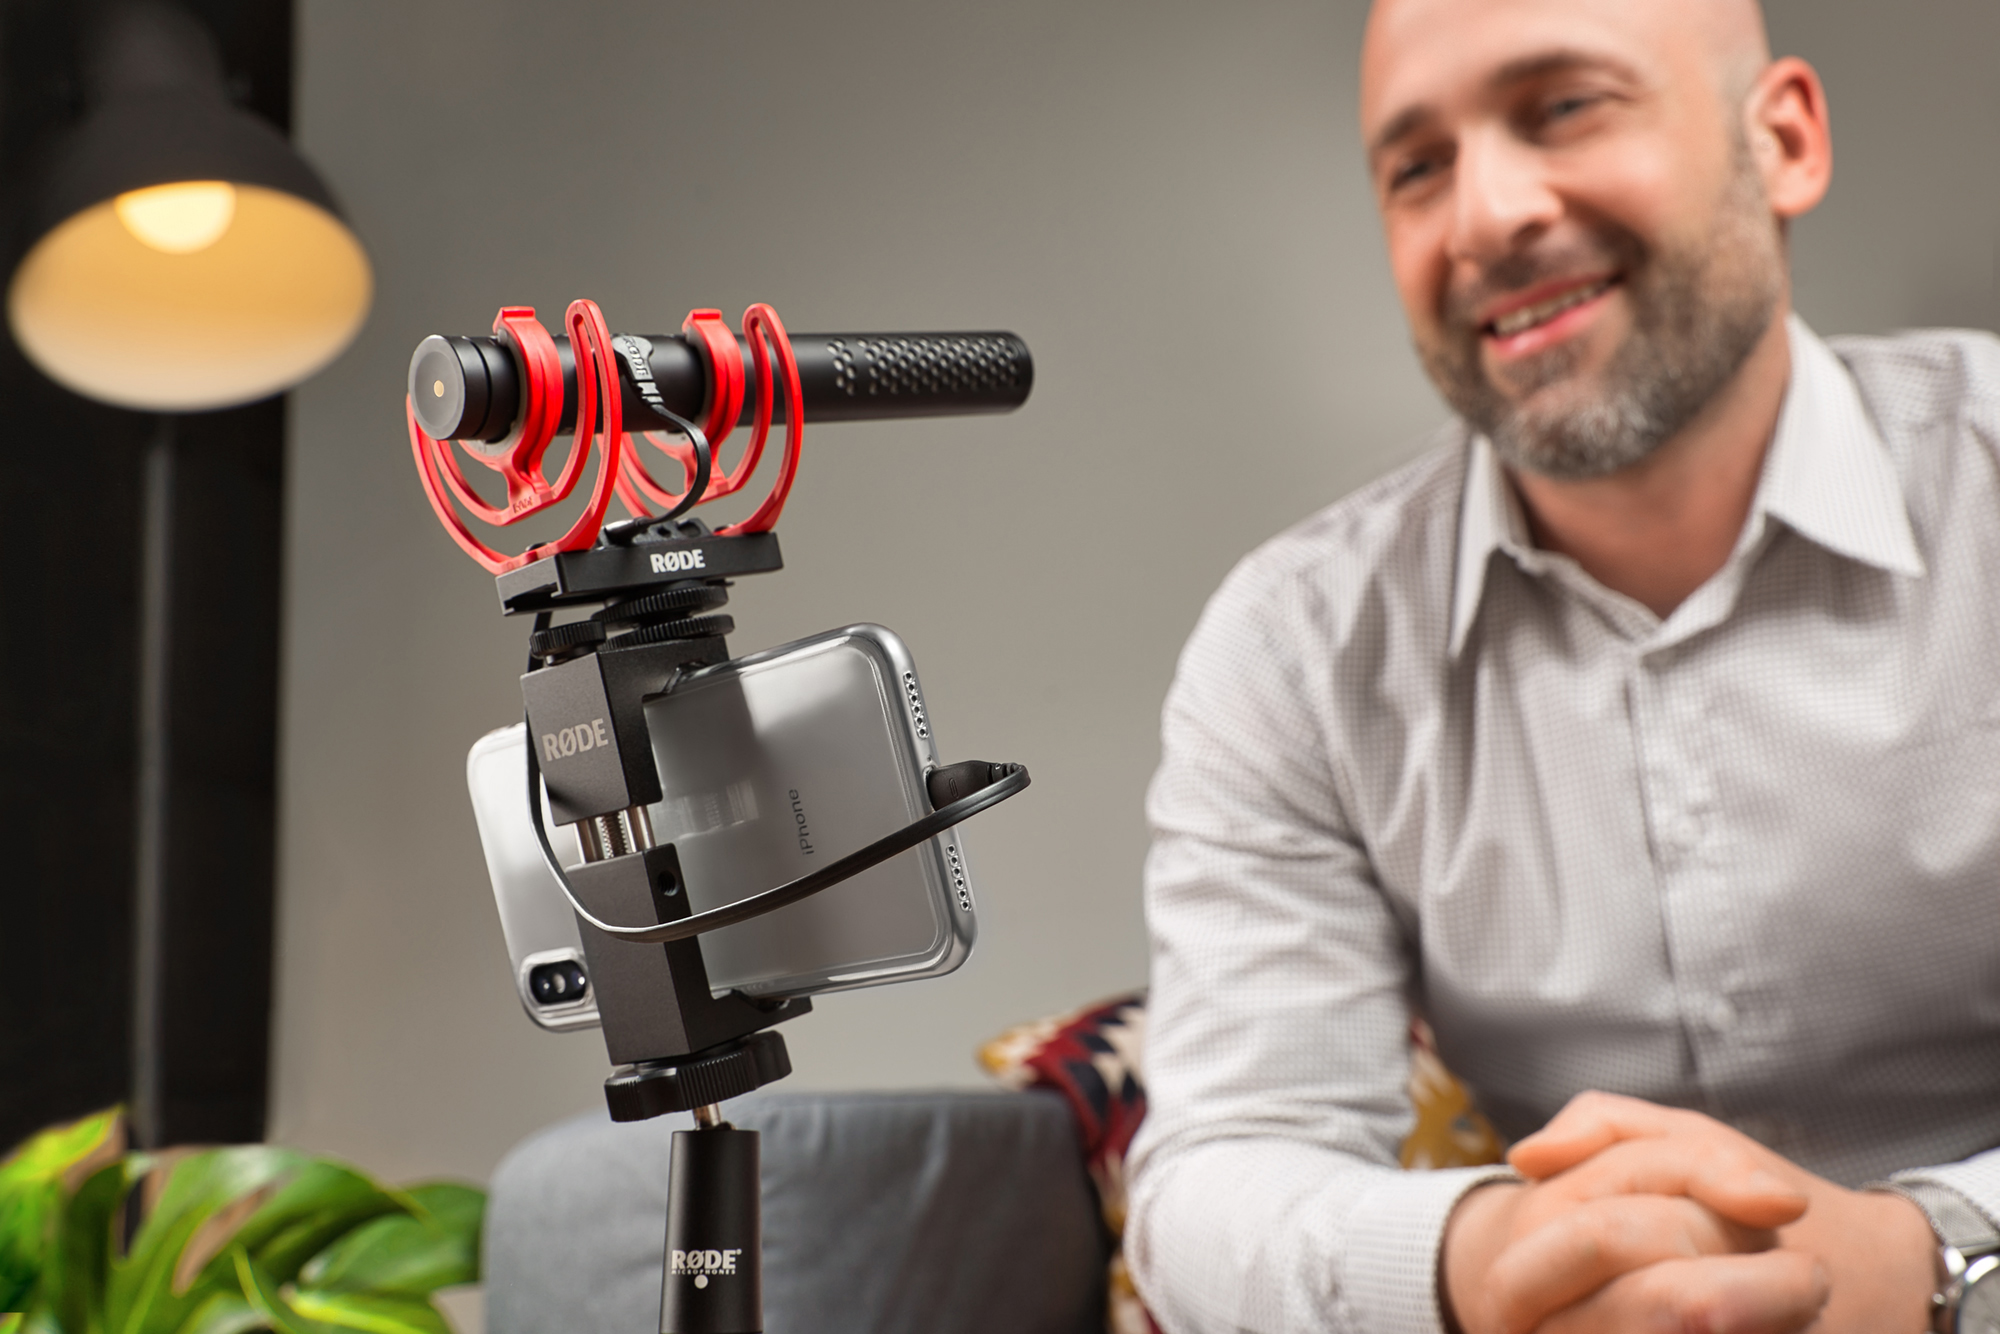 videomicntg_r_de_sc15_usb_cable_videomic_ntg_iphone_compatible_skyping_livingroom_rgb.jpg